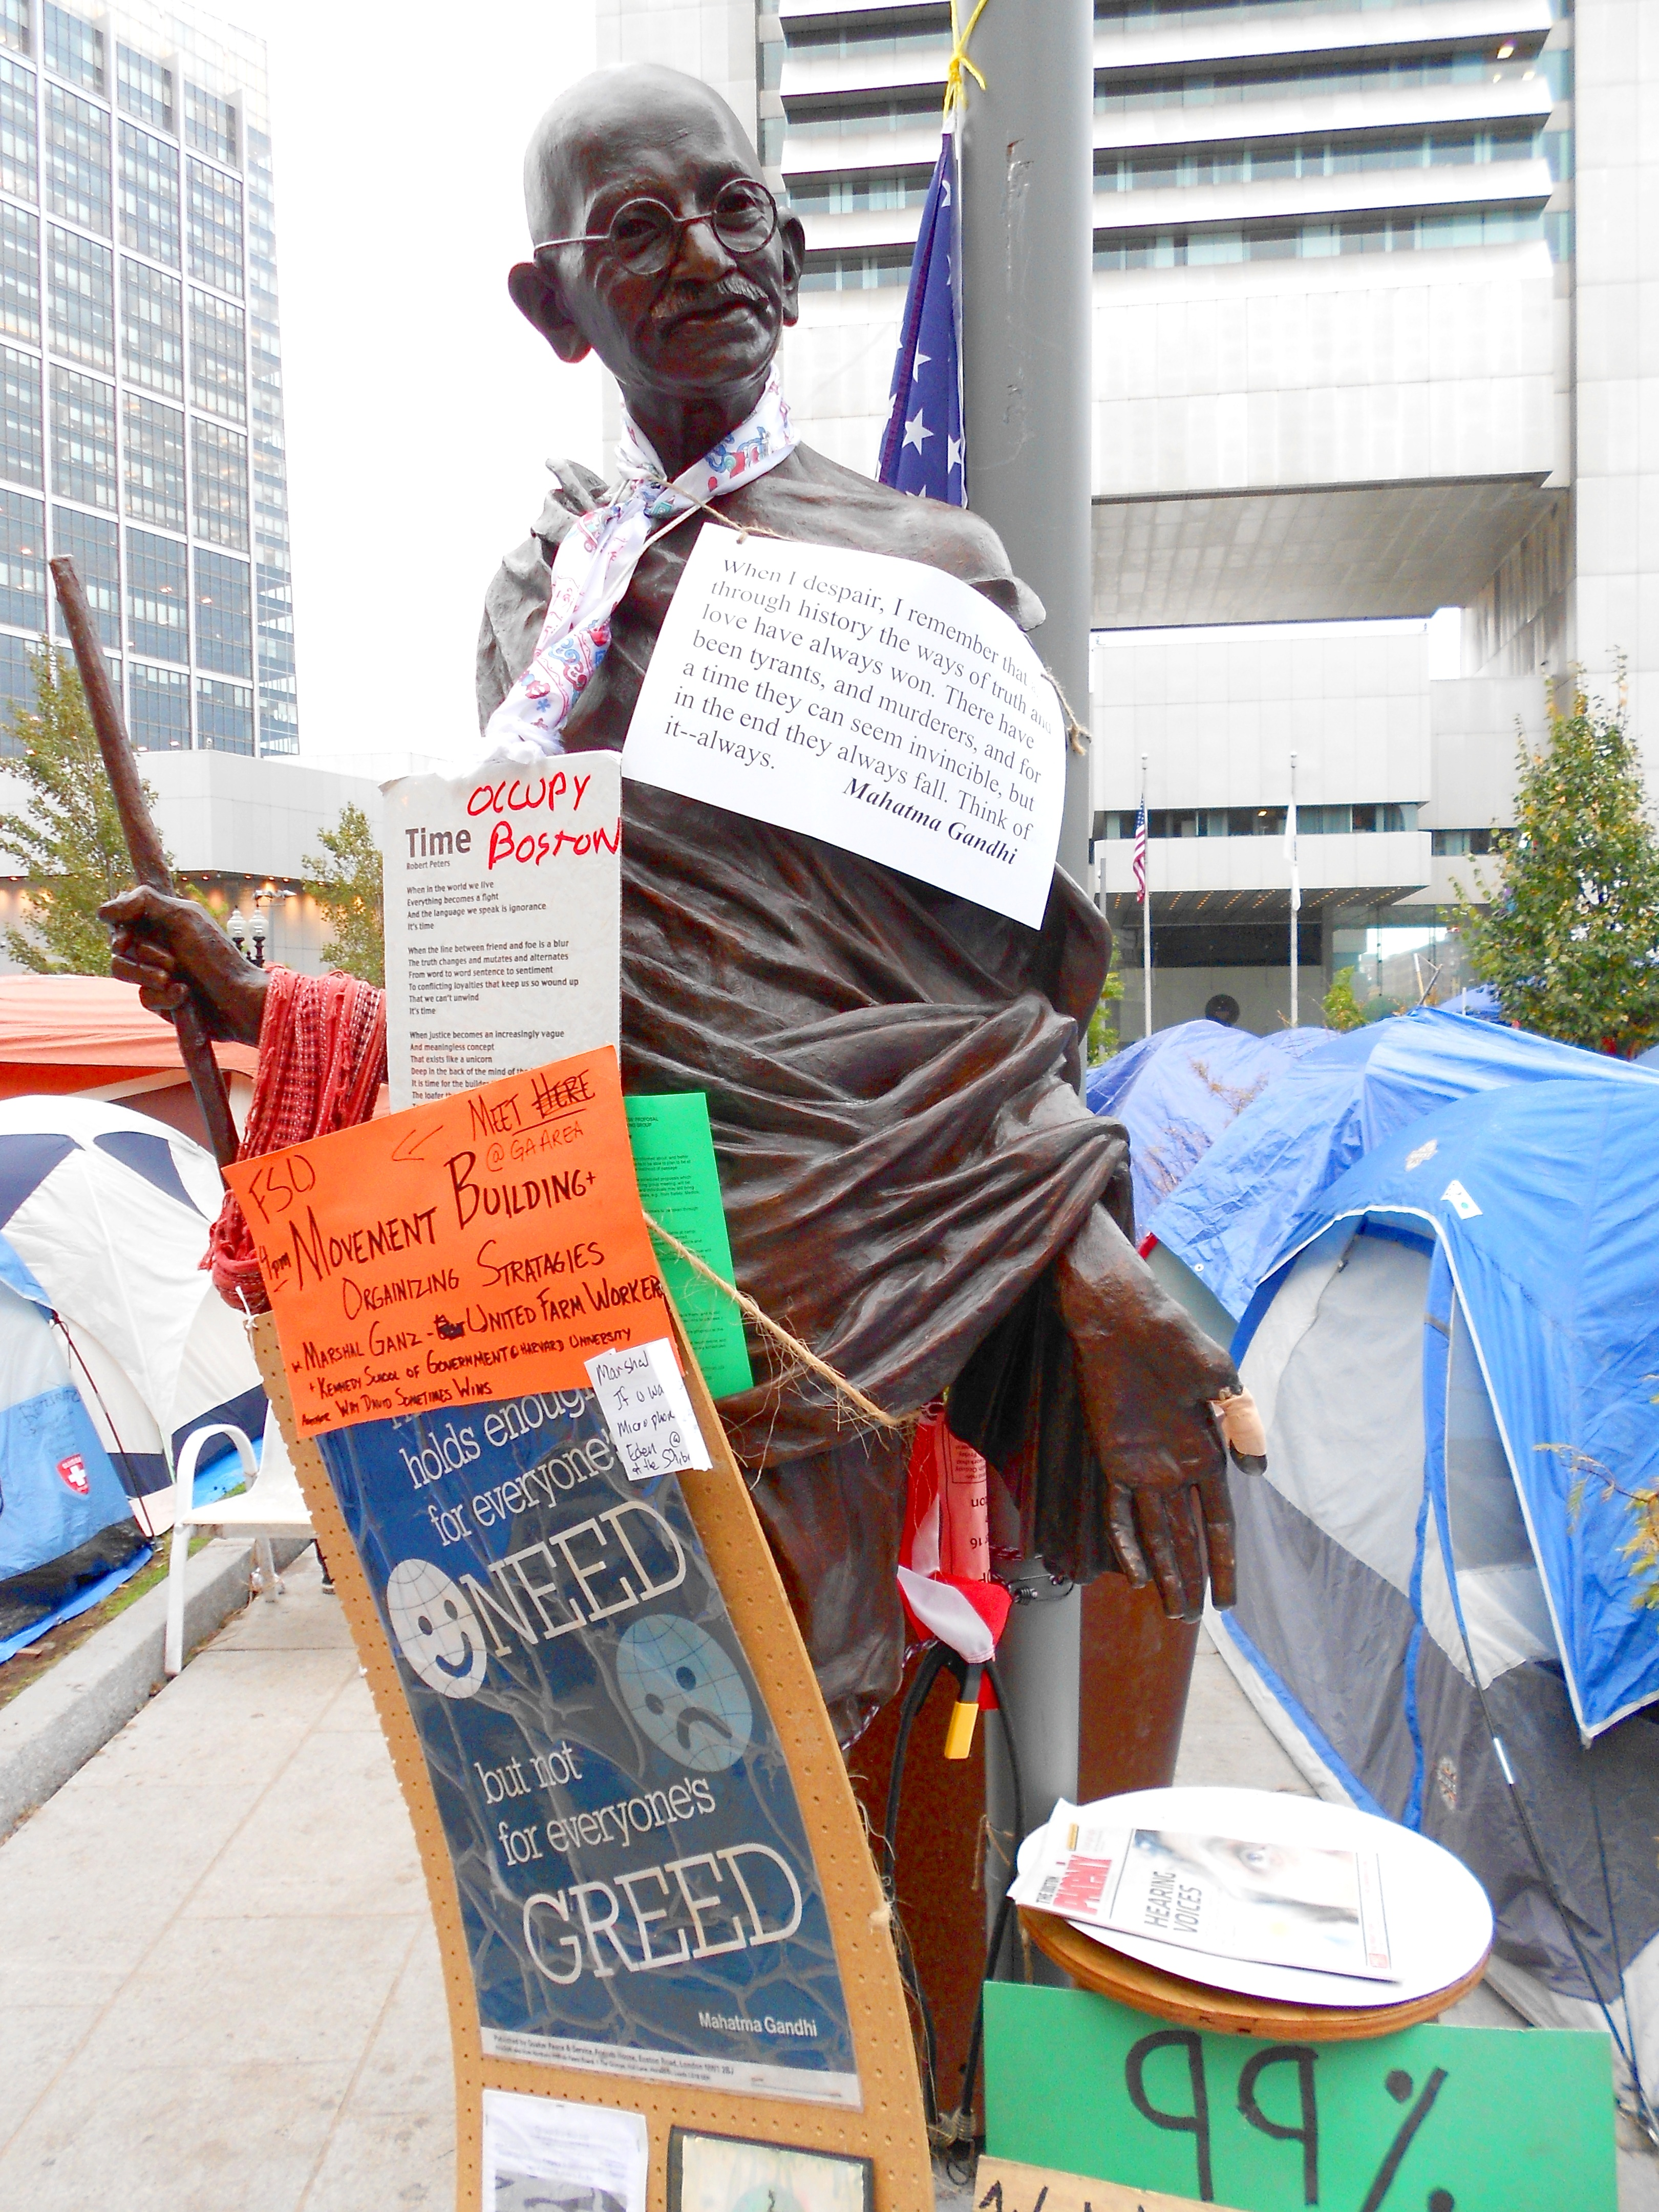 Peace Abbey's Gandhi statue at Occupy Boston